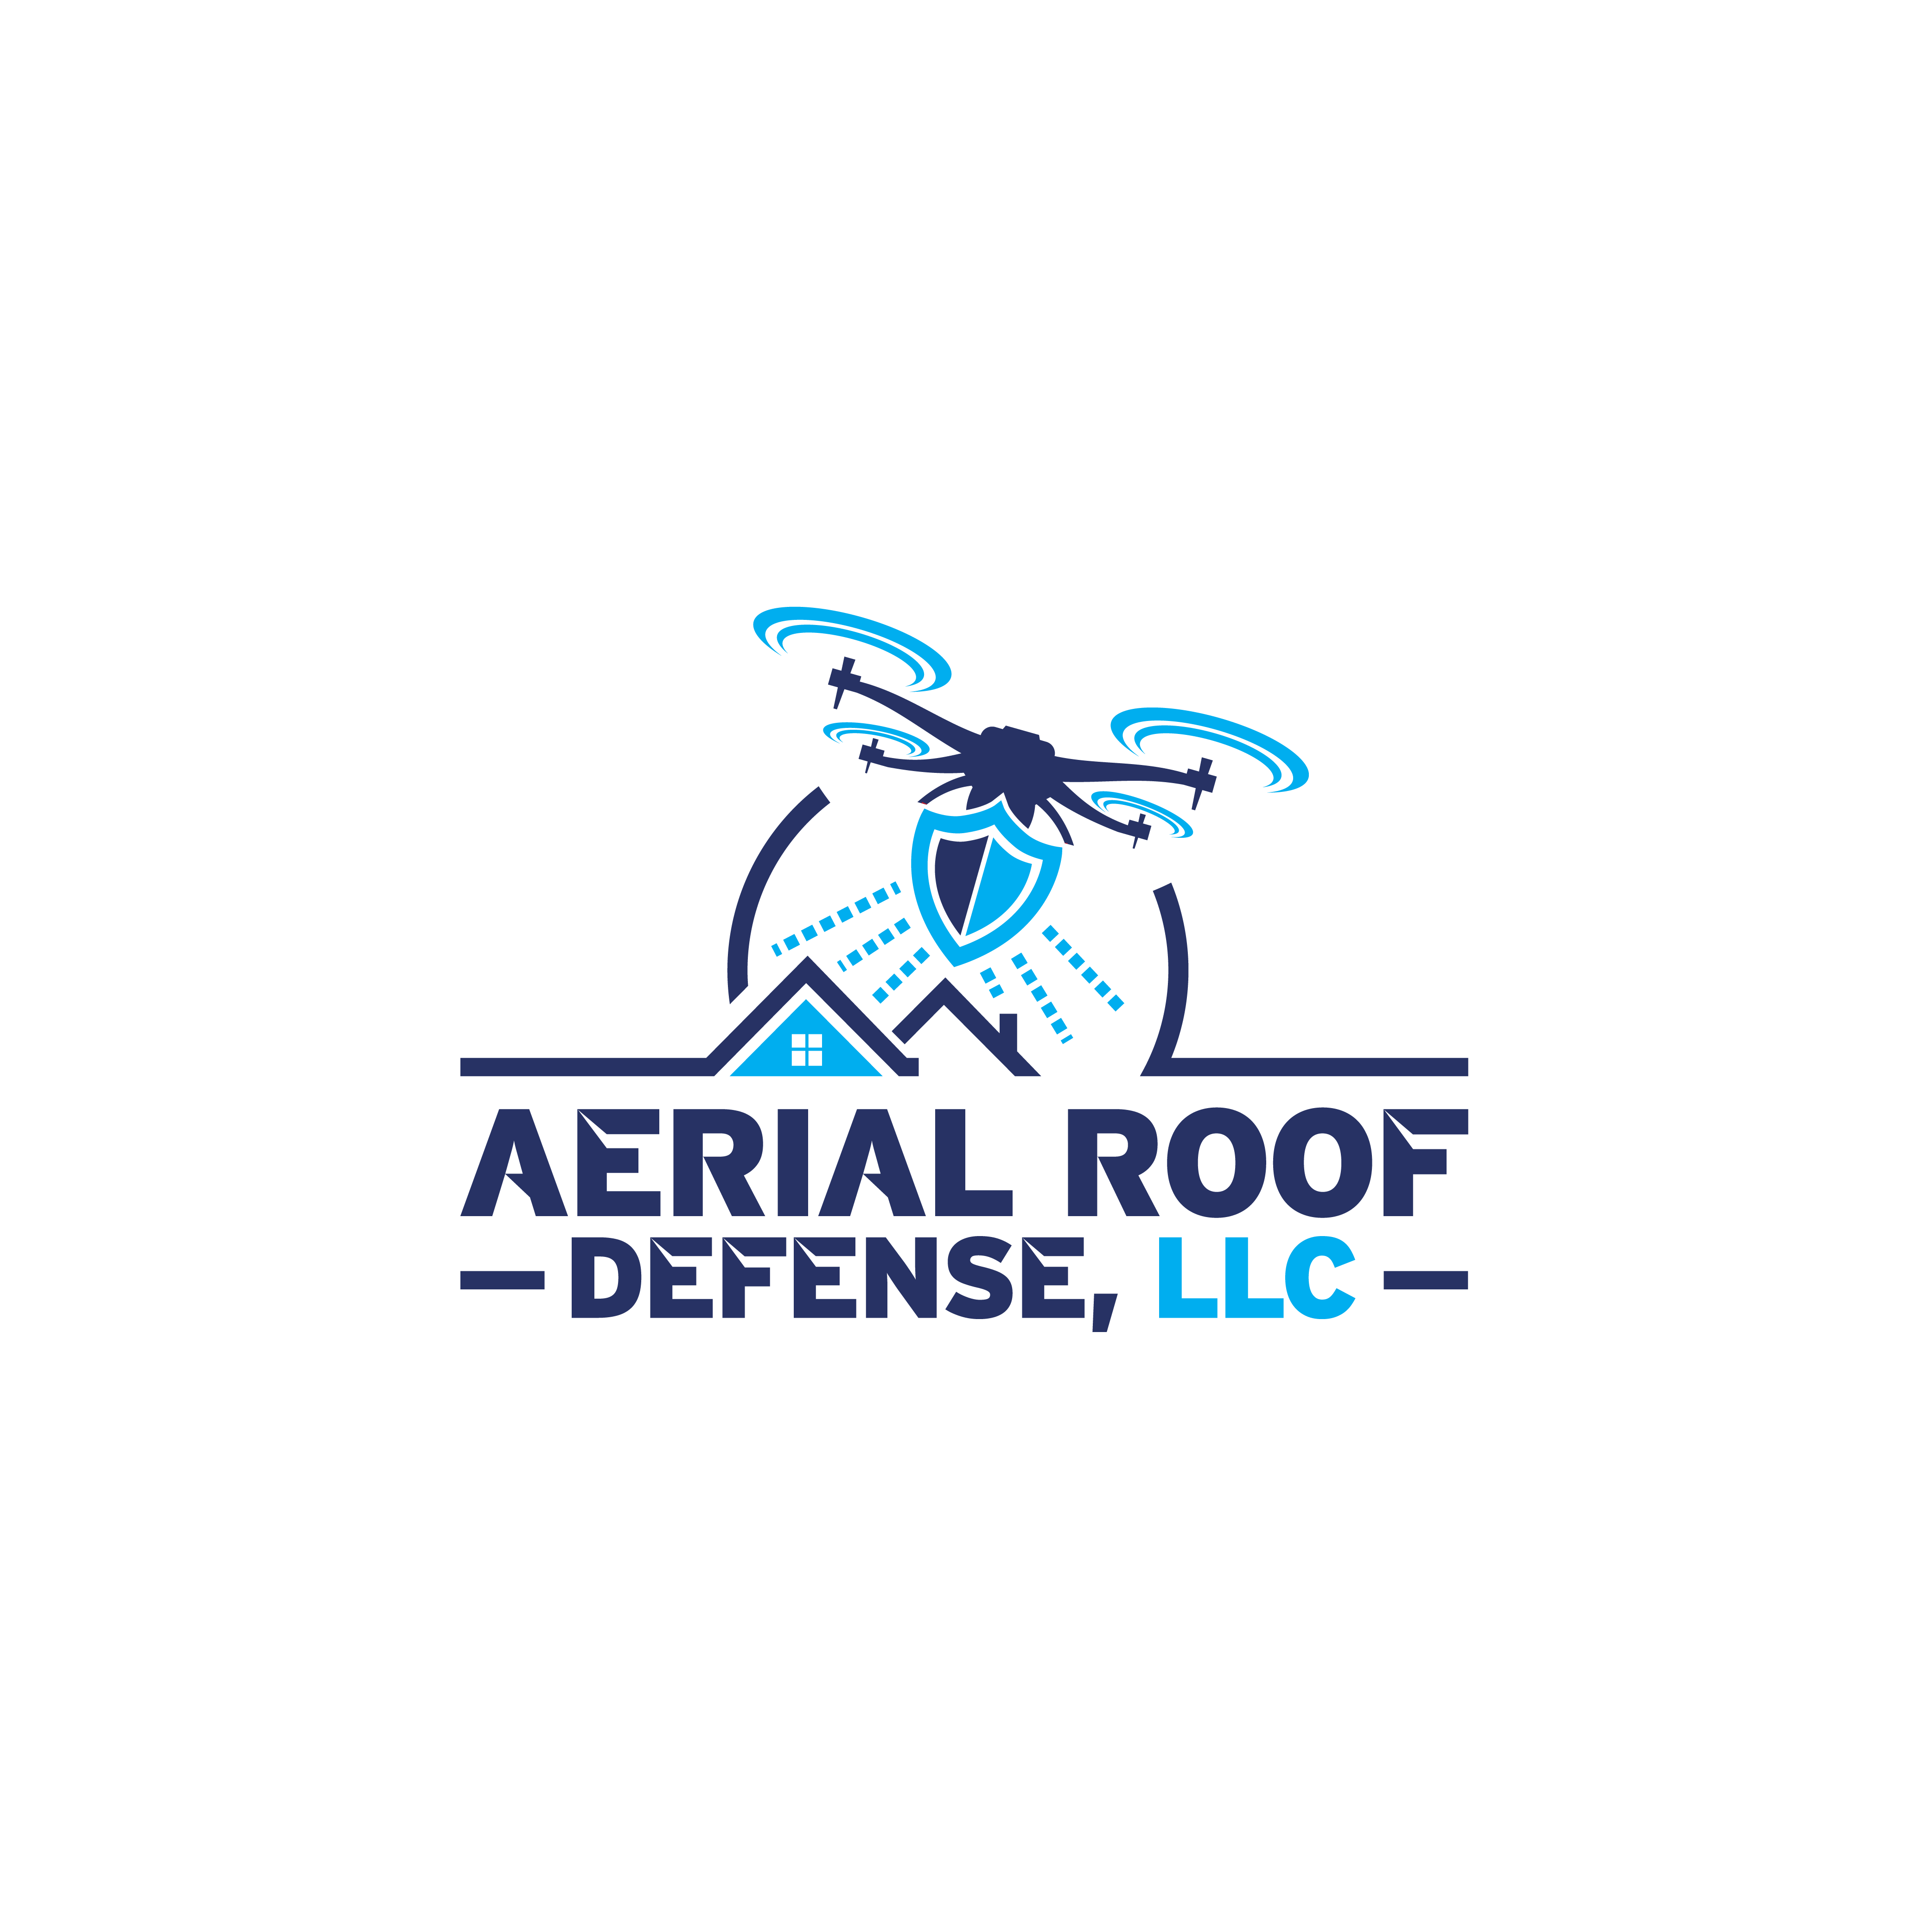 Create logo for unique service industry that utilizes Drone technology.